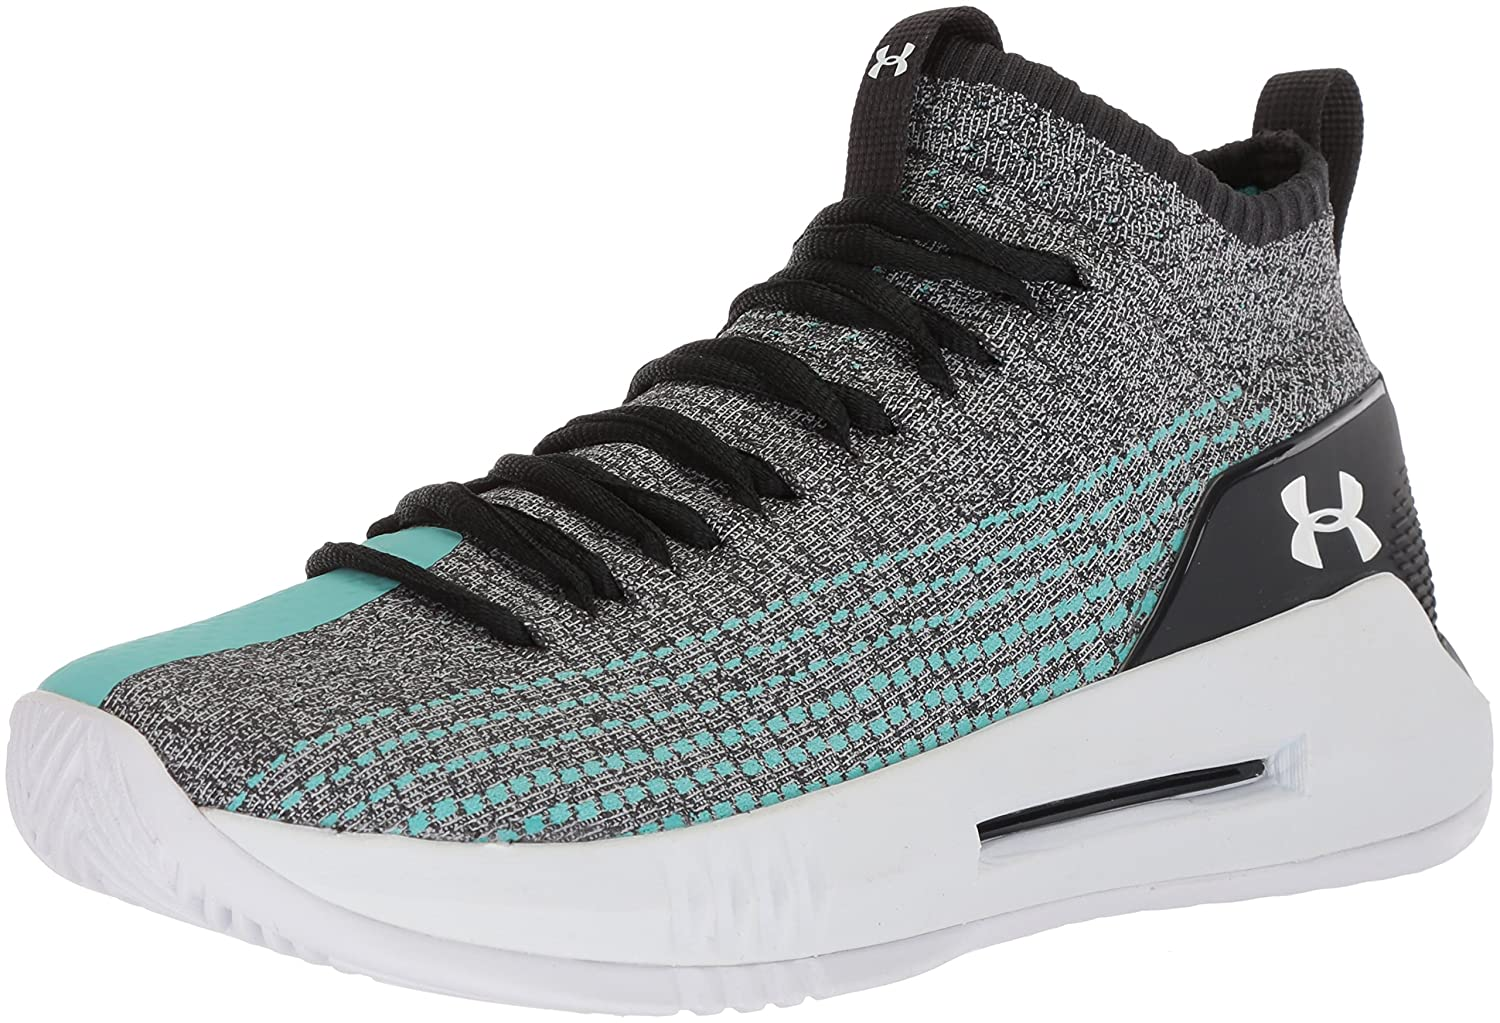 Under Armour Men's Heat Seeker Basketball Shoe B071S8D8Q1 12 M US|Anthracite (101)/Tropical Tide